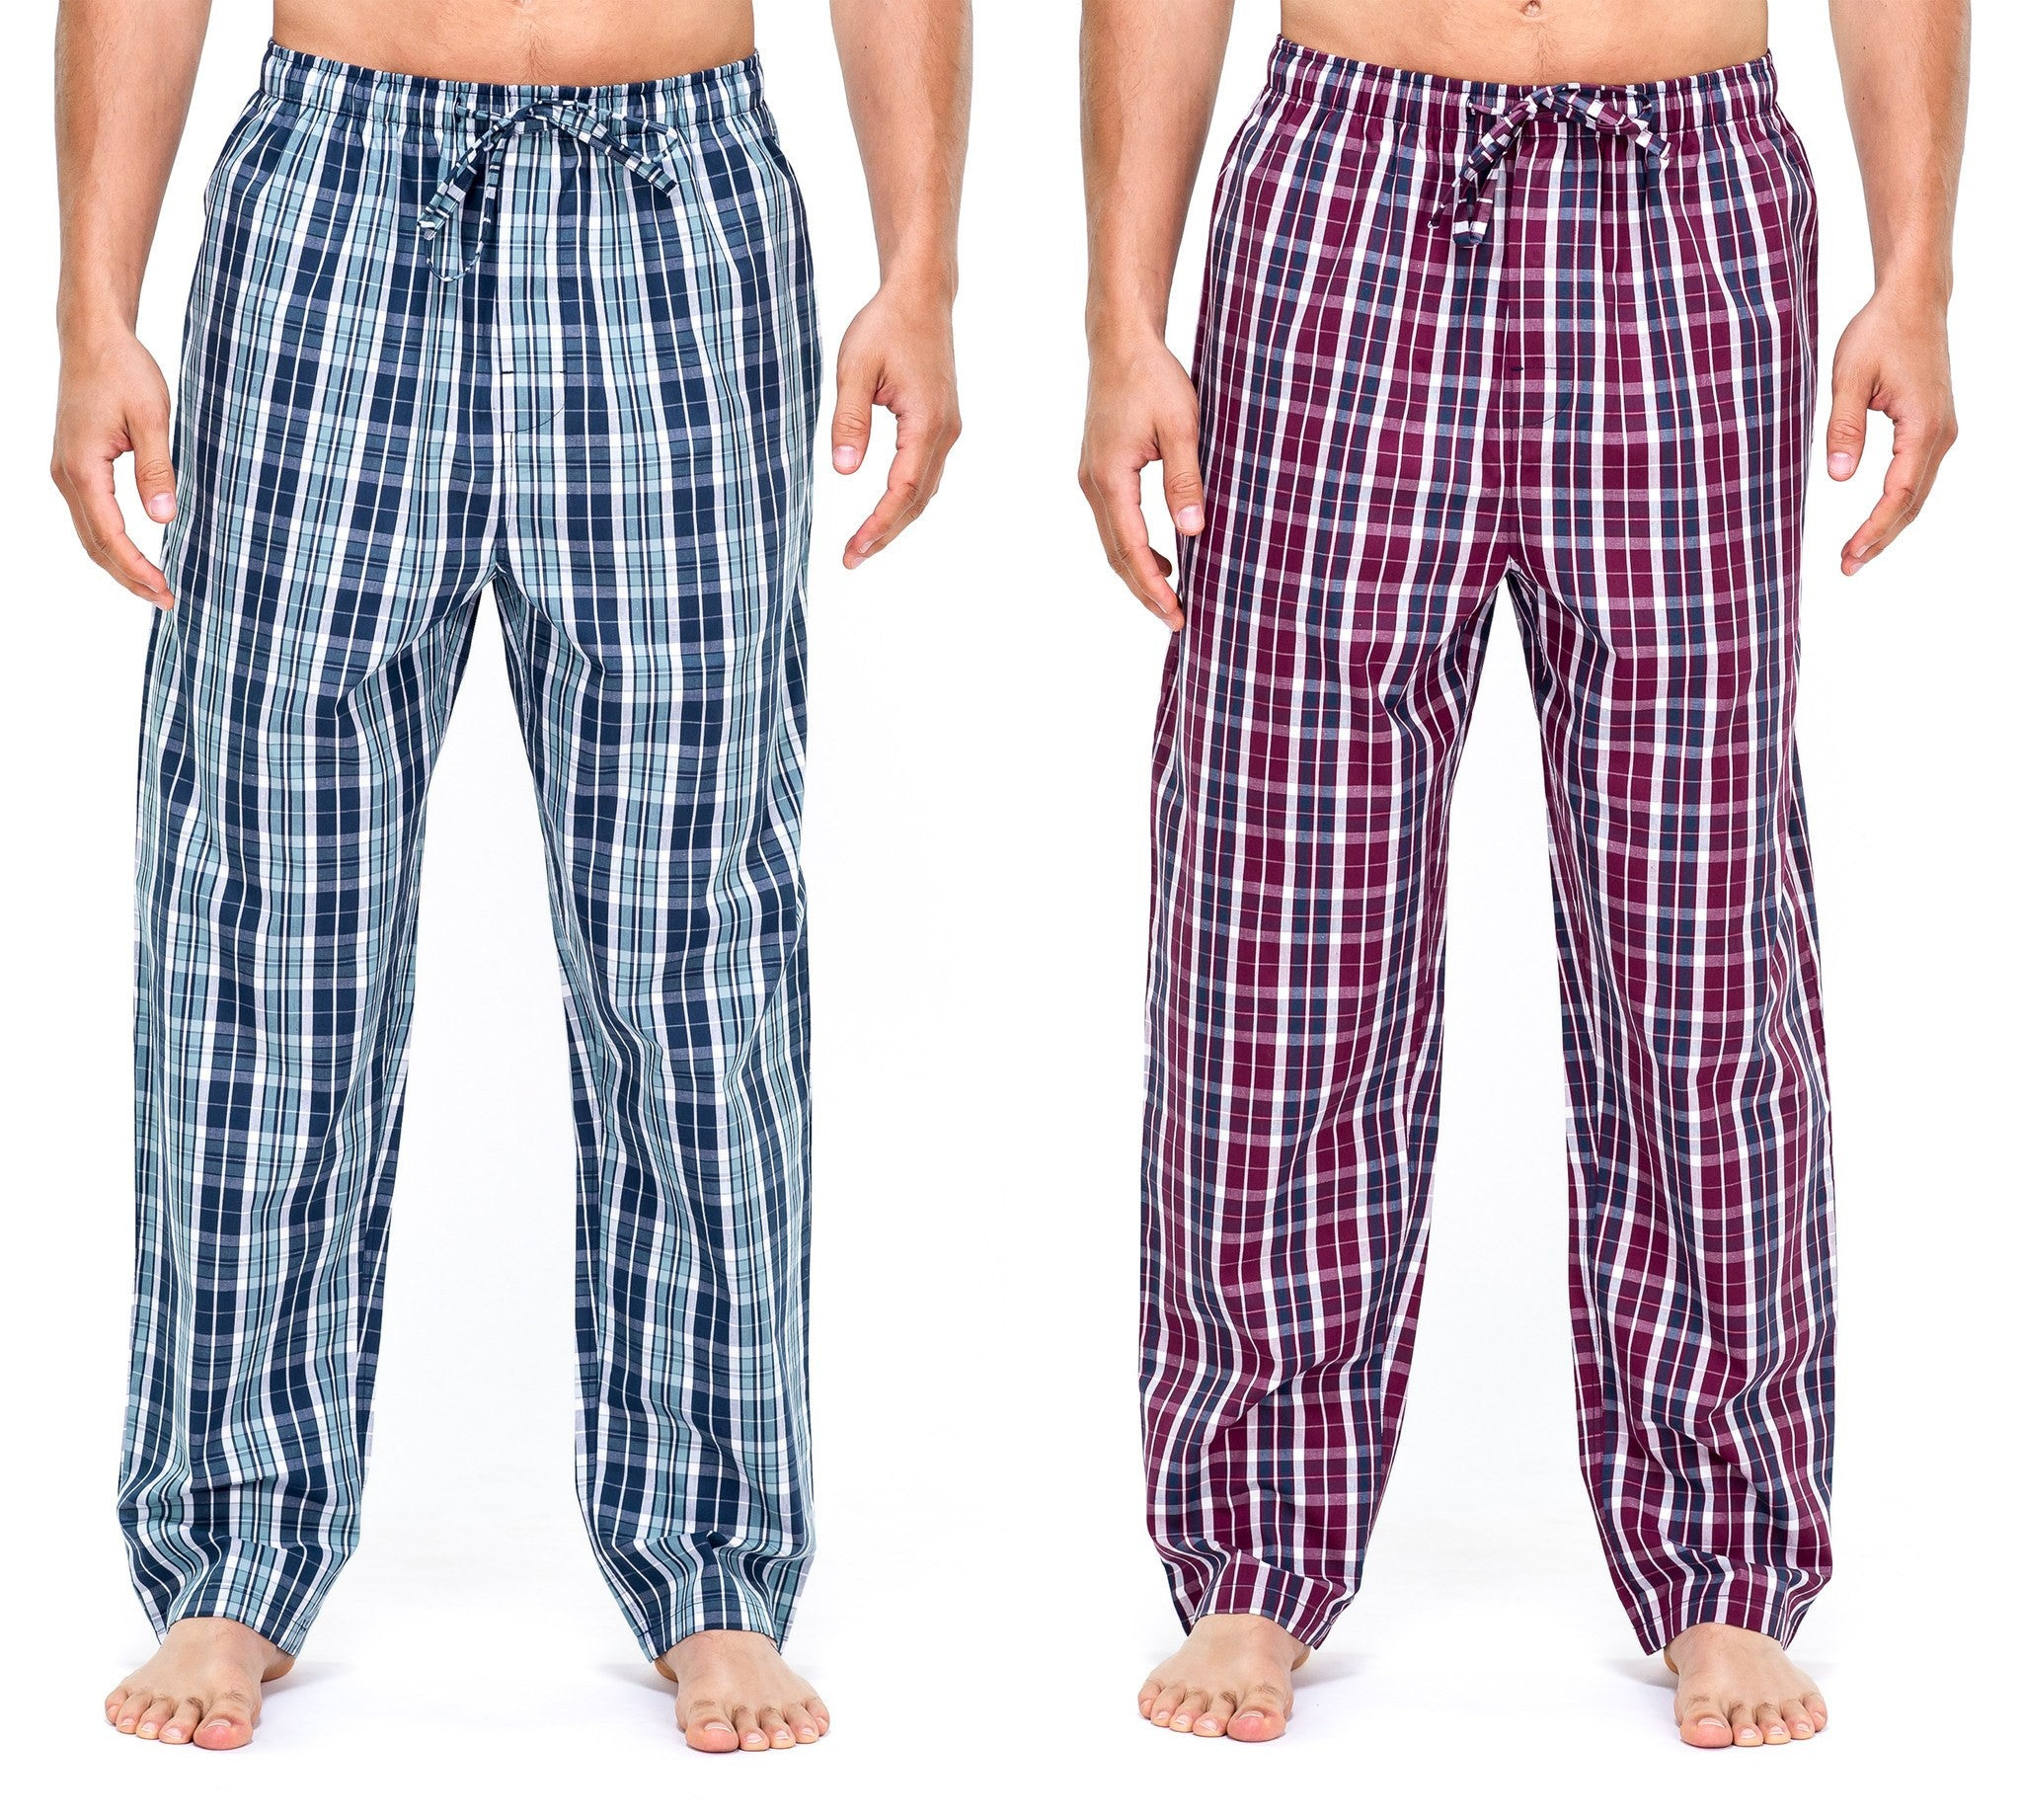 Men's Premium Cotton Lounge/Sleep Pants - 2 Pack